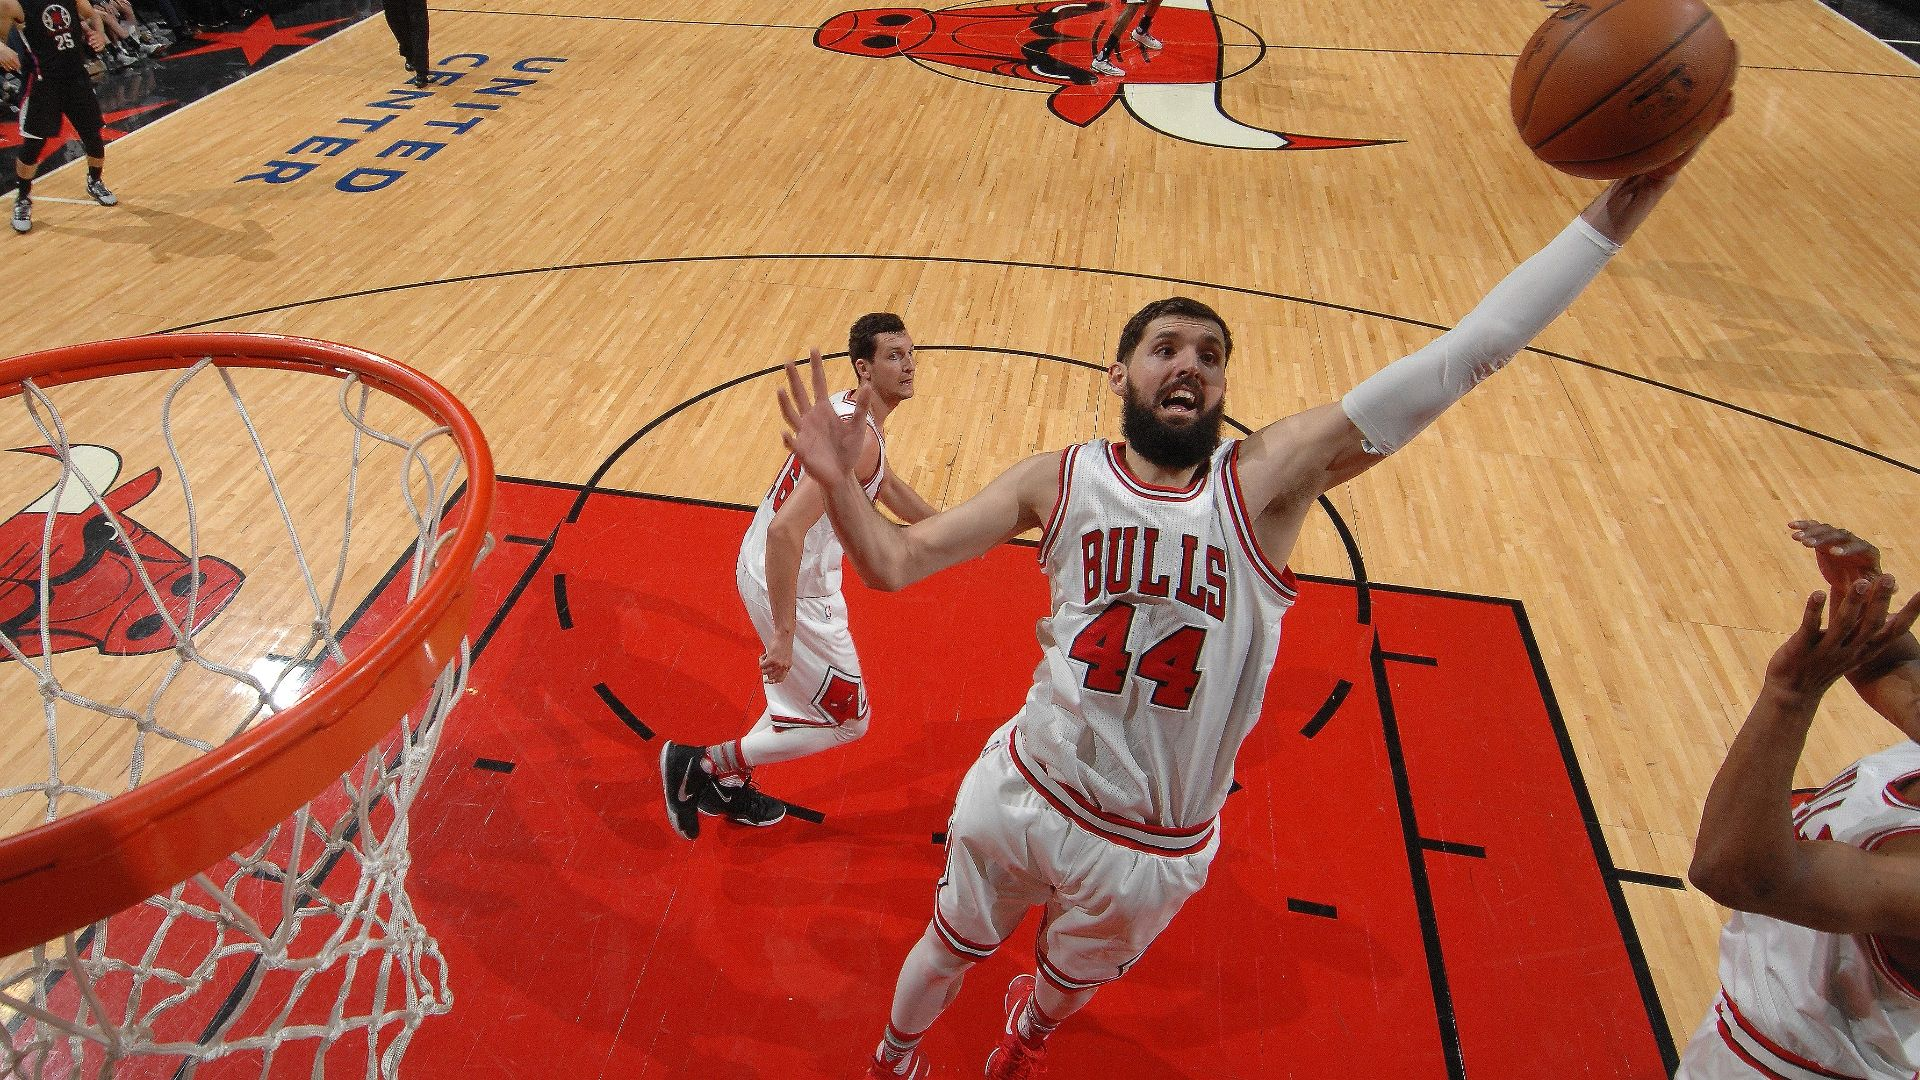 Bulls are evaluating disciplinary action for Portis